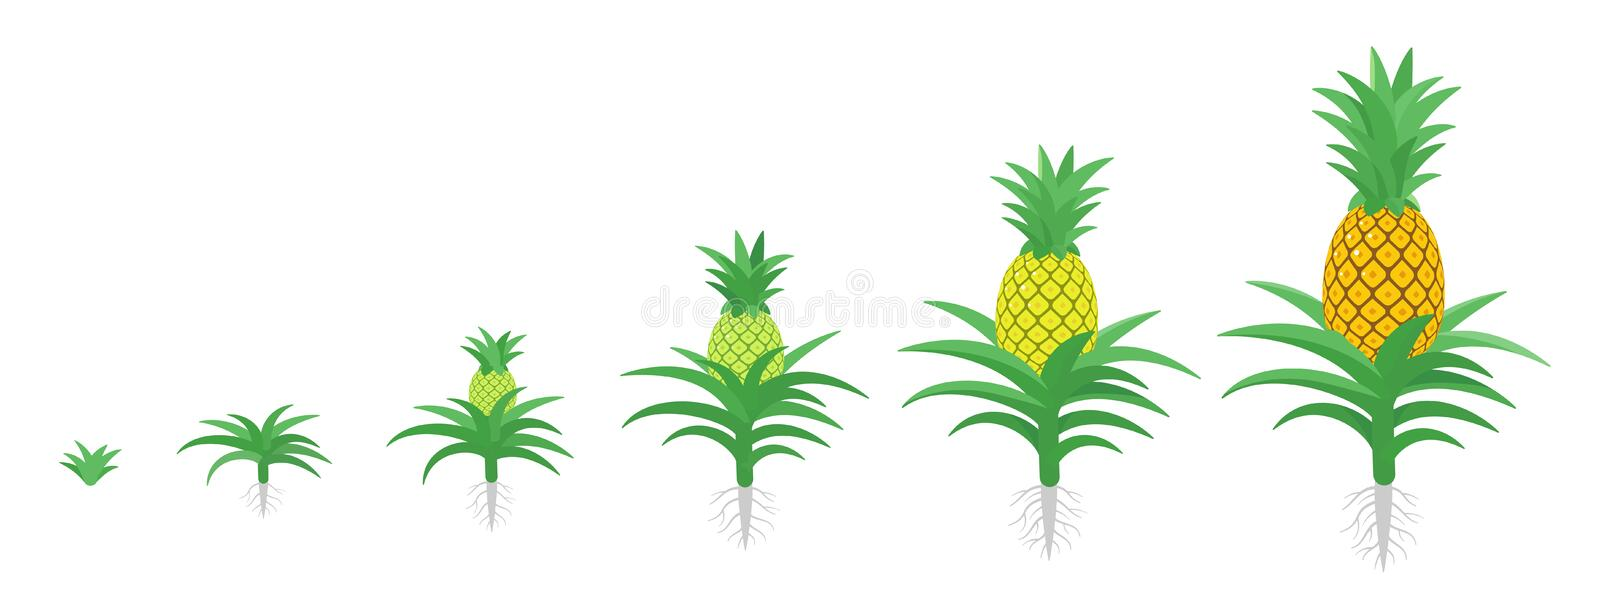 The Growth Cycle of pineapple. Tropical plant with an edible fruit. Ananas phases set. Ananas comosus ripening period. The life. The Growth Cycle of pineapple royalty free illustration